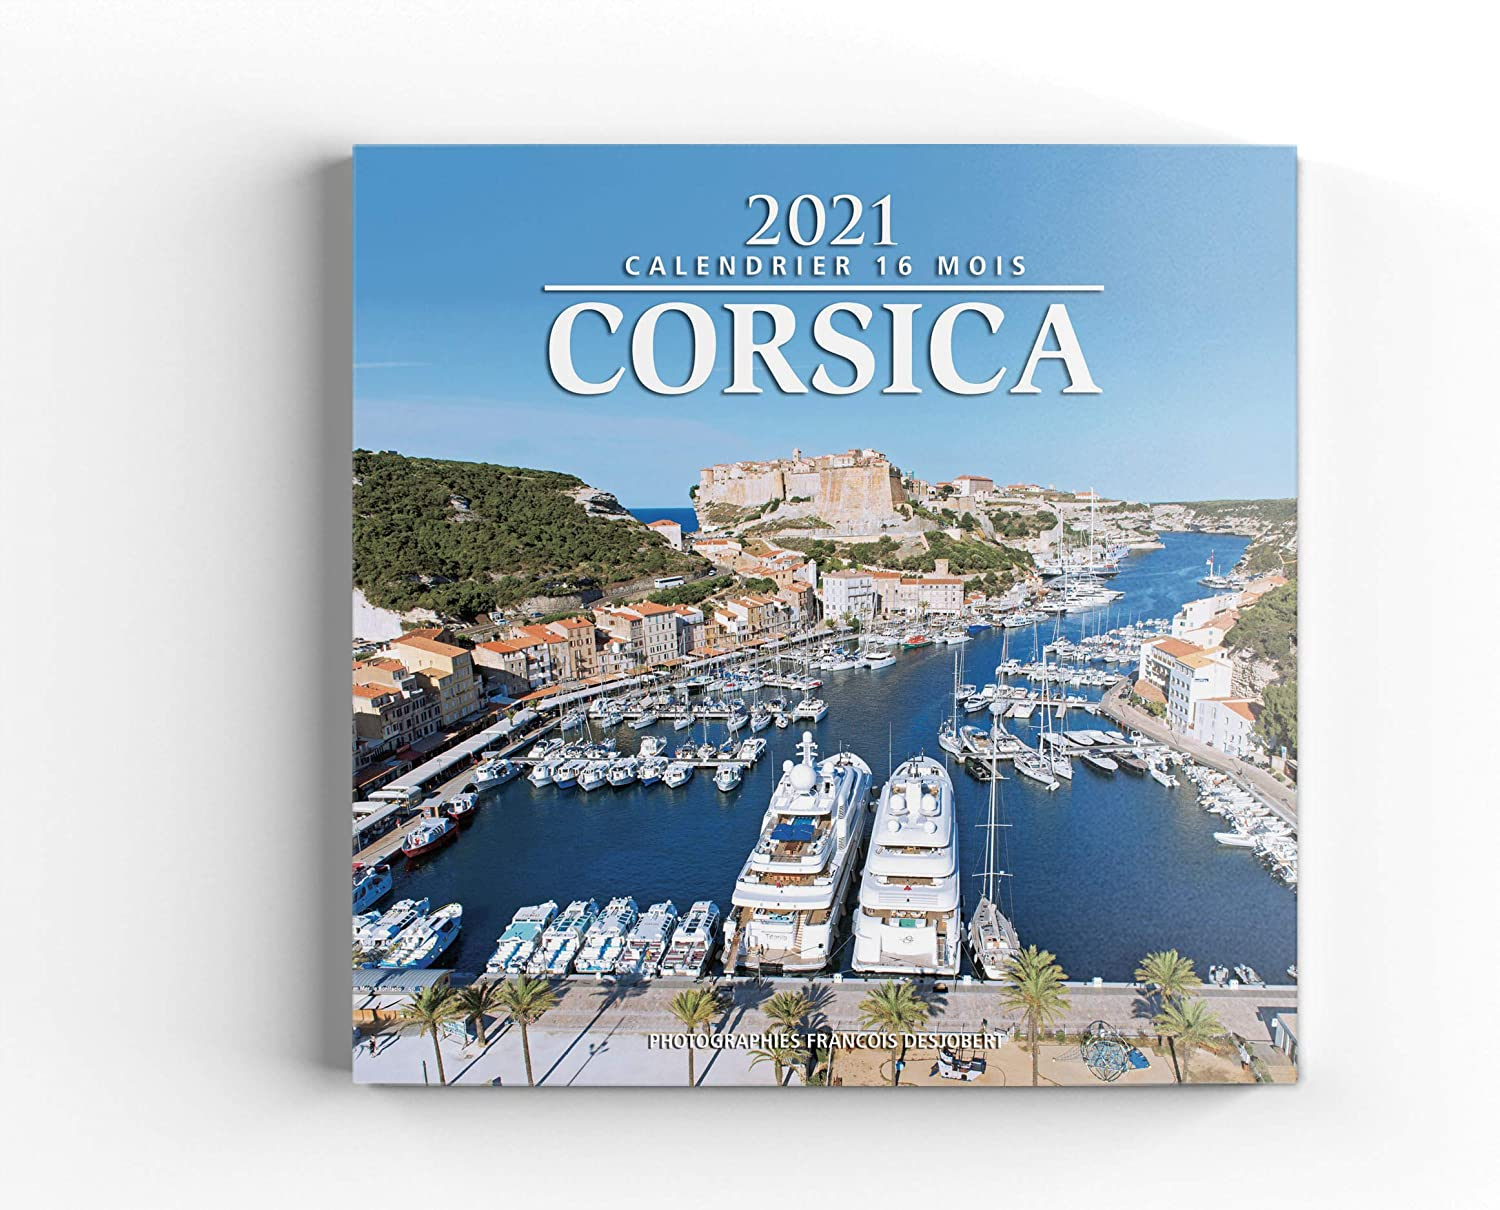 2021 Corsica Calendar : The Most Beautiful Scenery of Corsica